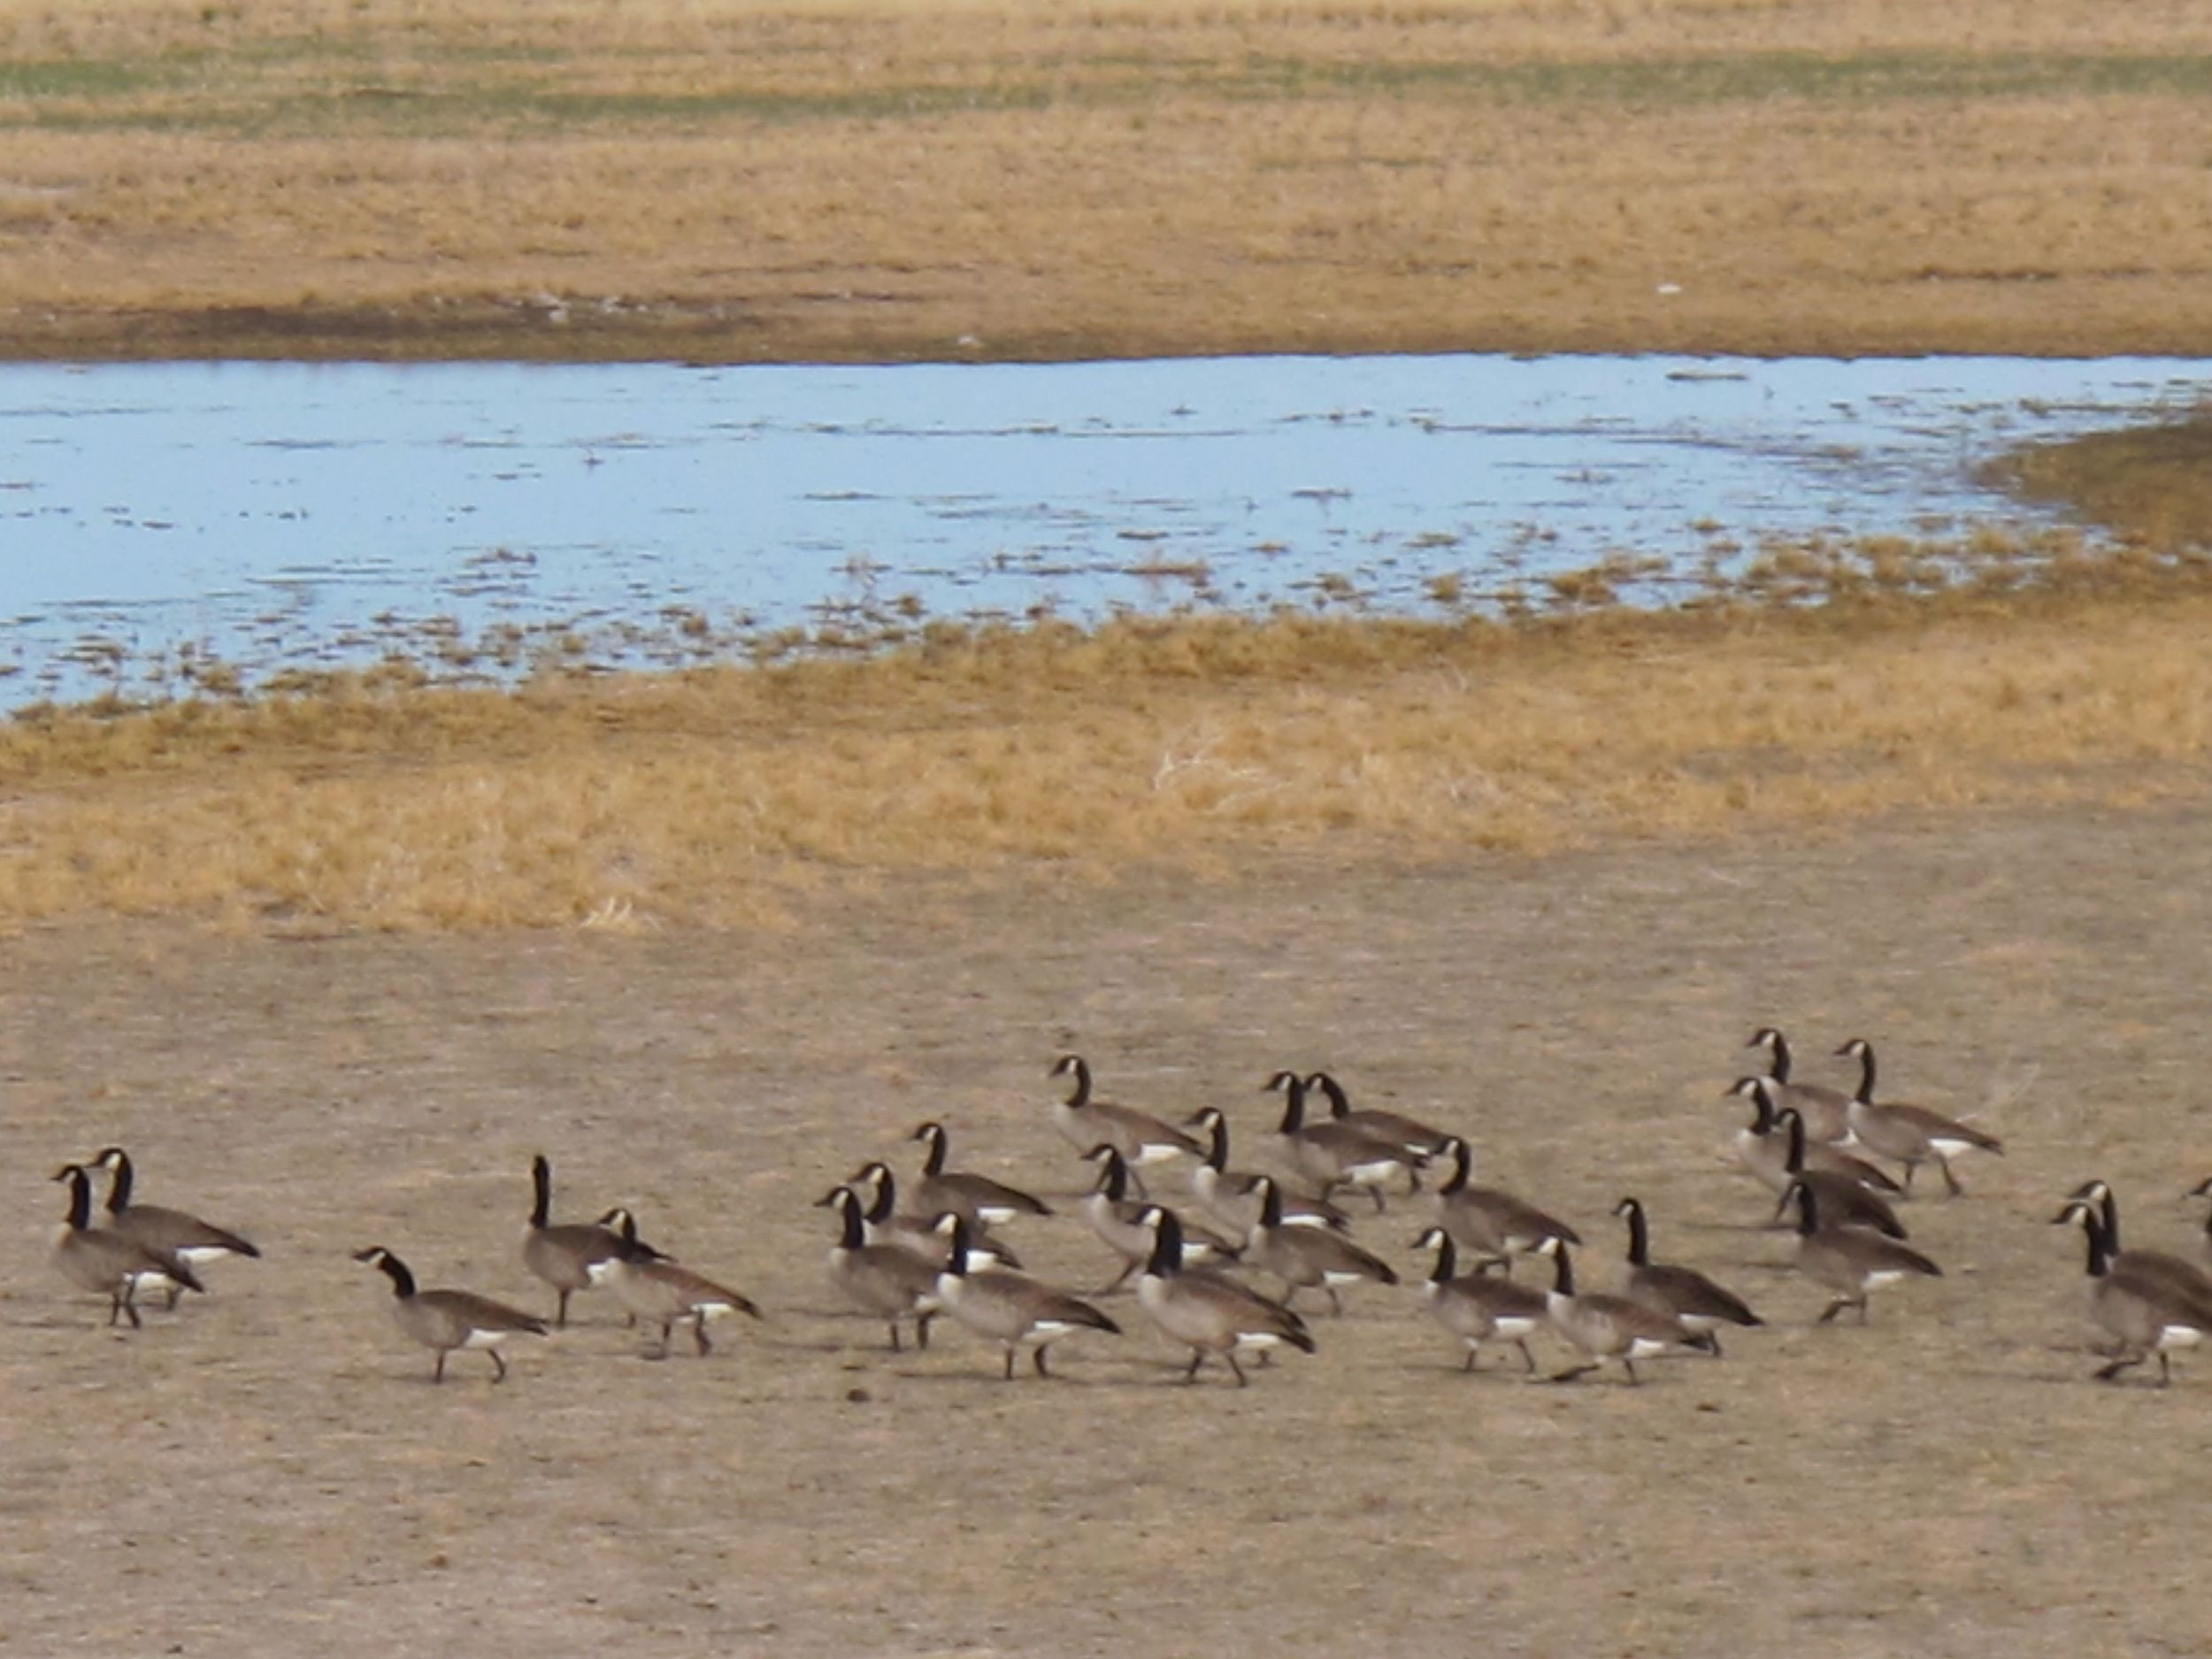 At the Malheur refuge we saw Canada geese and a variety of other waterfowl, wading birds and raptors.